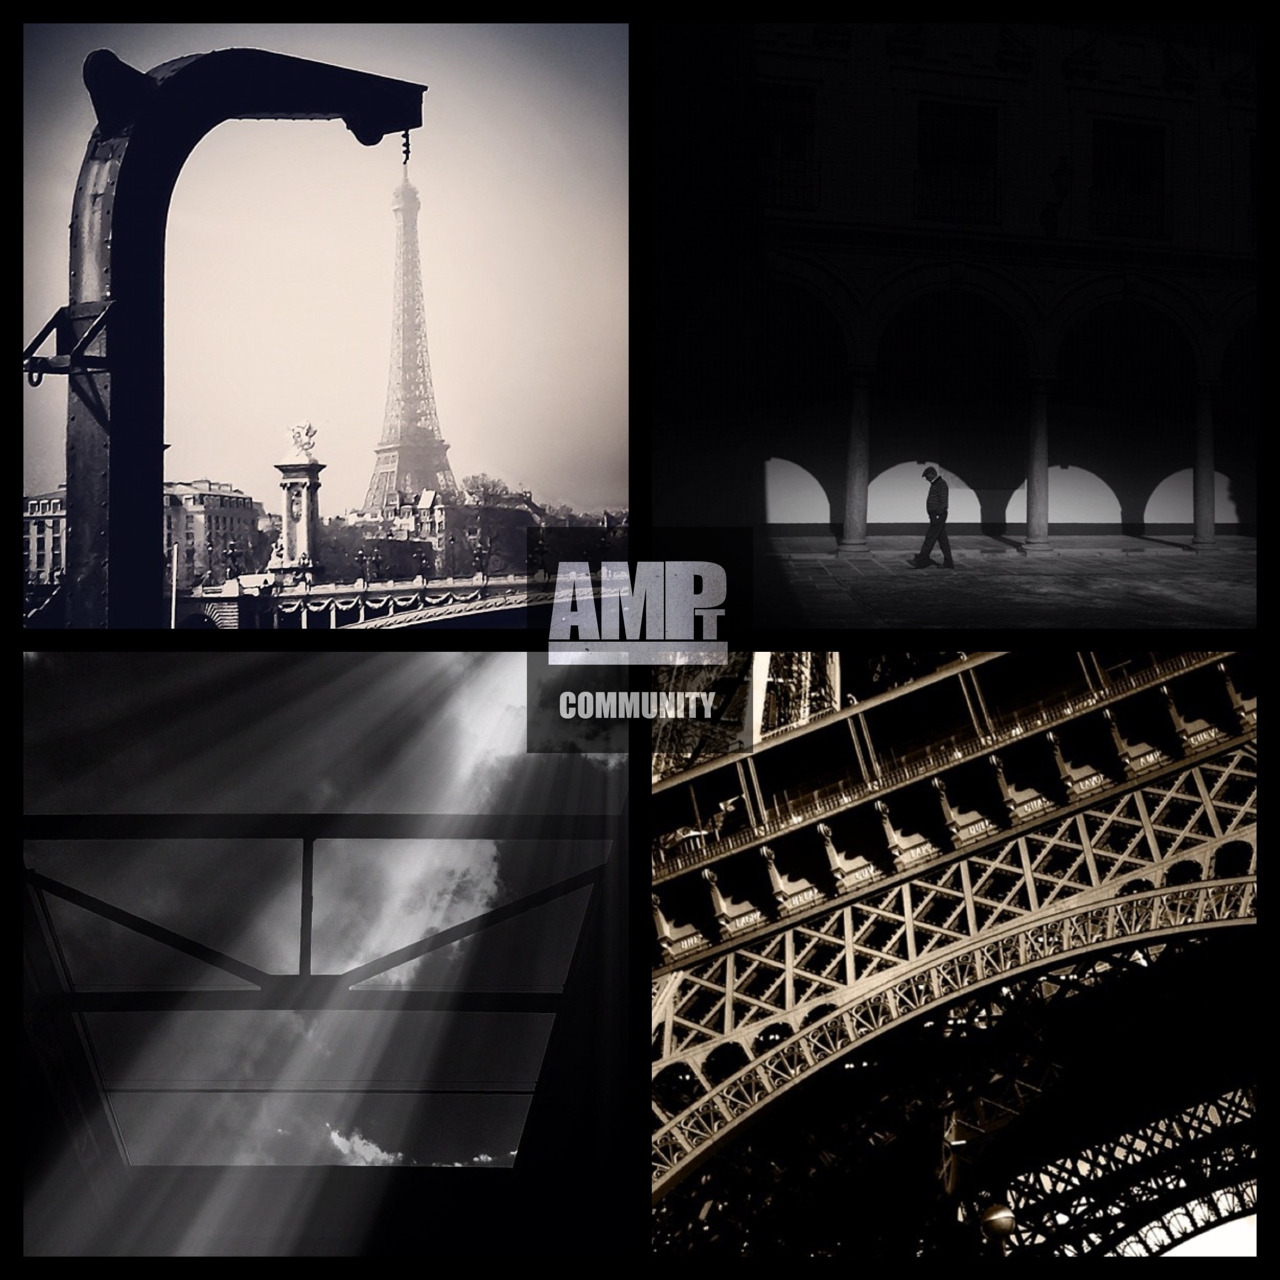 AMPt Community Recommendations   Here are 4 IGers we would like to introduce you to. Stop by their feeds,say hello and check out their editing process for the images above!   Clockwise from top left:    @seb_gordon  Shot with native camera Apps used: camera+,PSexpress, noir, IG filter    @pepesanchez  Shot with native camera Apps used: camera+, snapseed  noir, IG filter   @laurentz2011  Shot with native camera  Apps: noir   @kalleyilmaz_ru  Shot with native camera  Apps used: rays, snapseed    Thank you for sharing with #AMPt_Community! Interested in having your work seen and considered for a spotlight? Tag to #Ampt_Community and include apps used and your editing process in the comment.    TIP: Listing the apps used to shoot/edit is a requirement for all nominated/featured images. Make your image standout by providing this information!